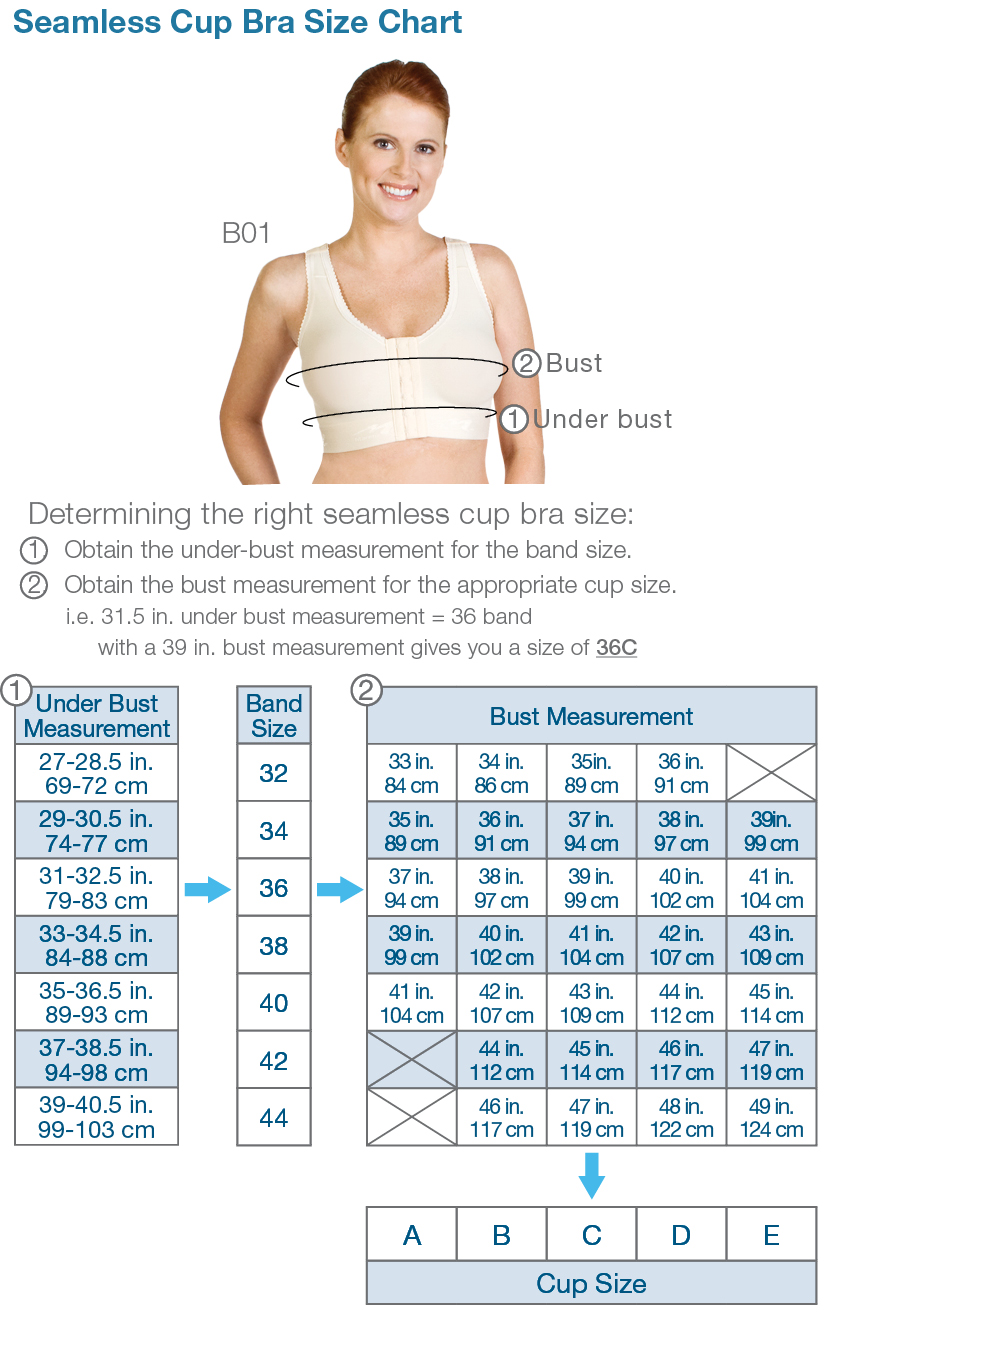 Learn how to measure your bra size by watching our step-by-step video. Plug your bra measurements into the bra size calculator to get your perfect fit! Only at Victoria's Secret.